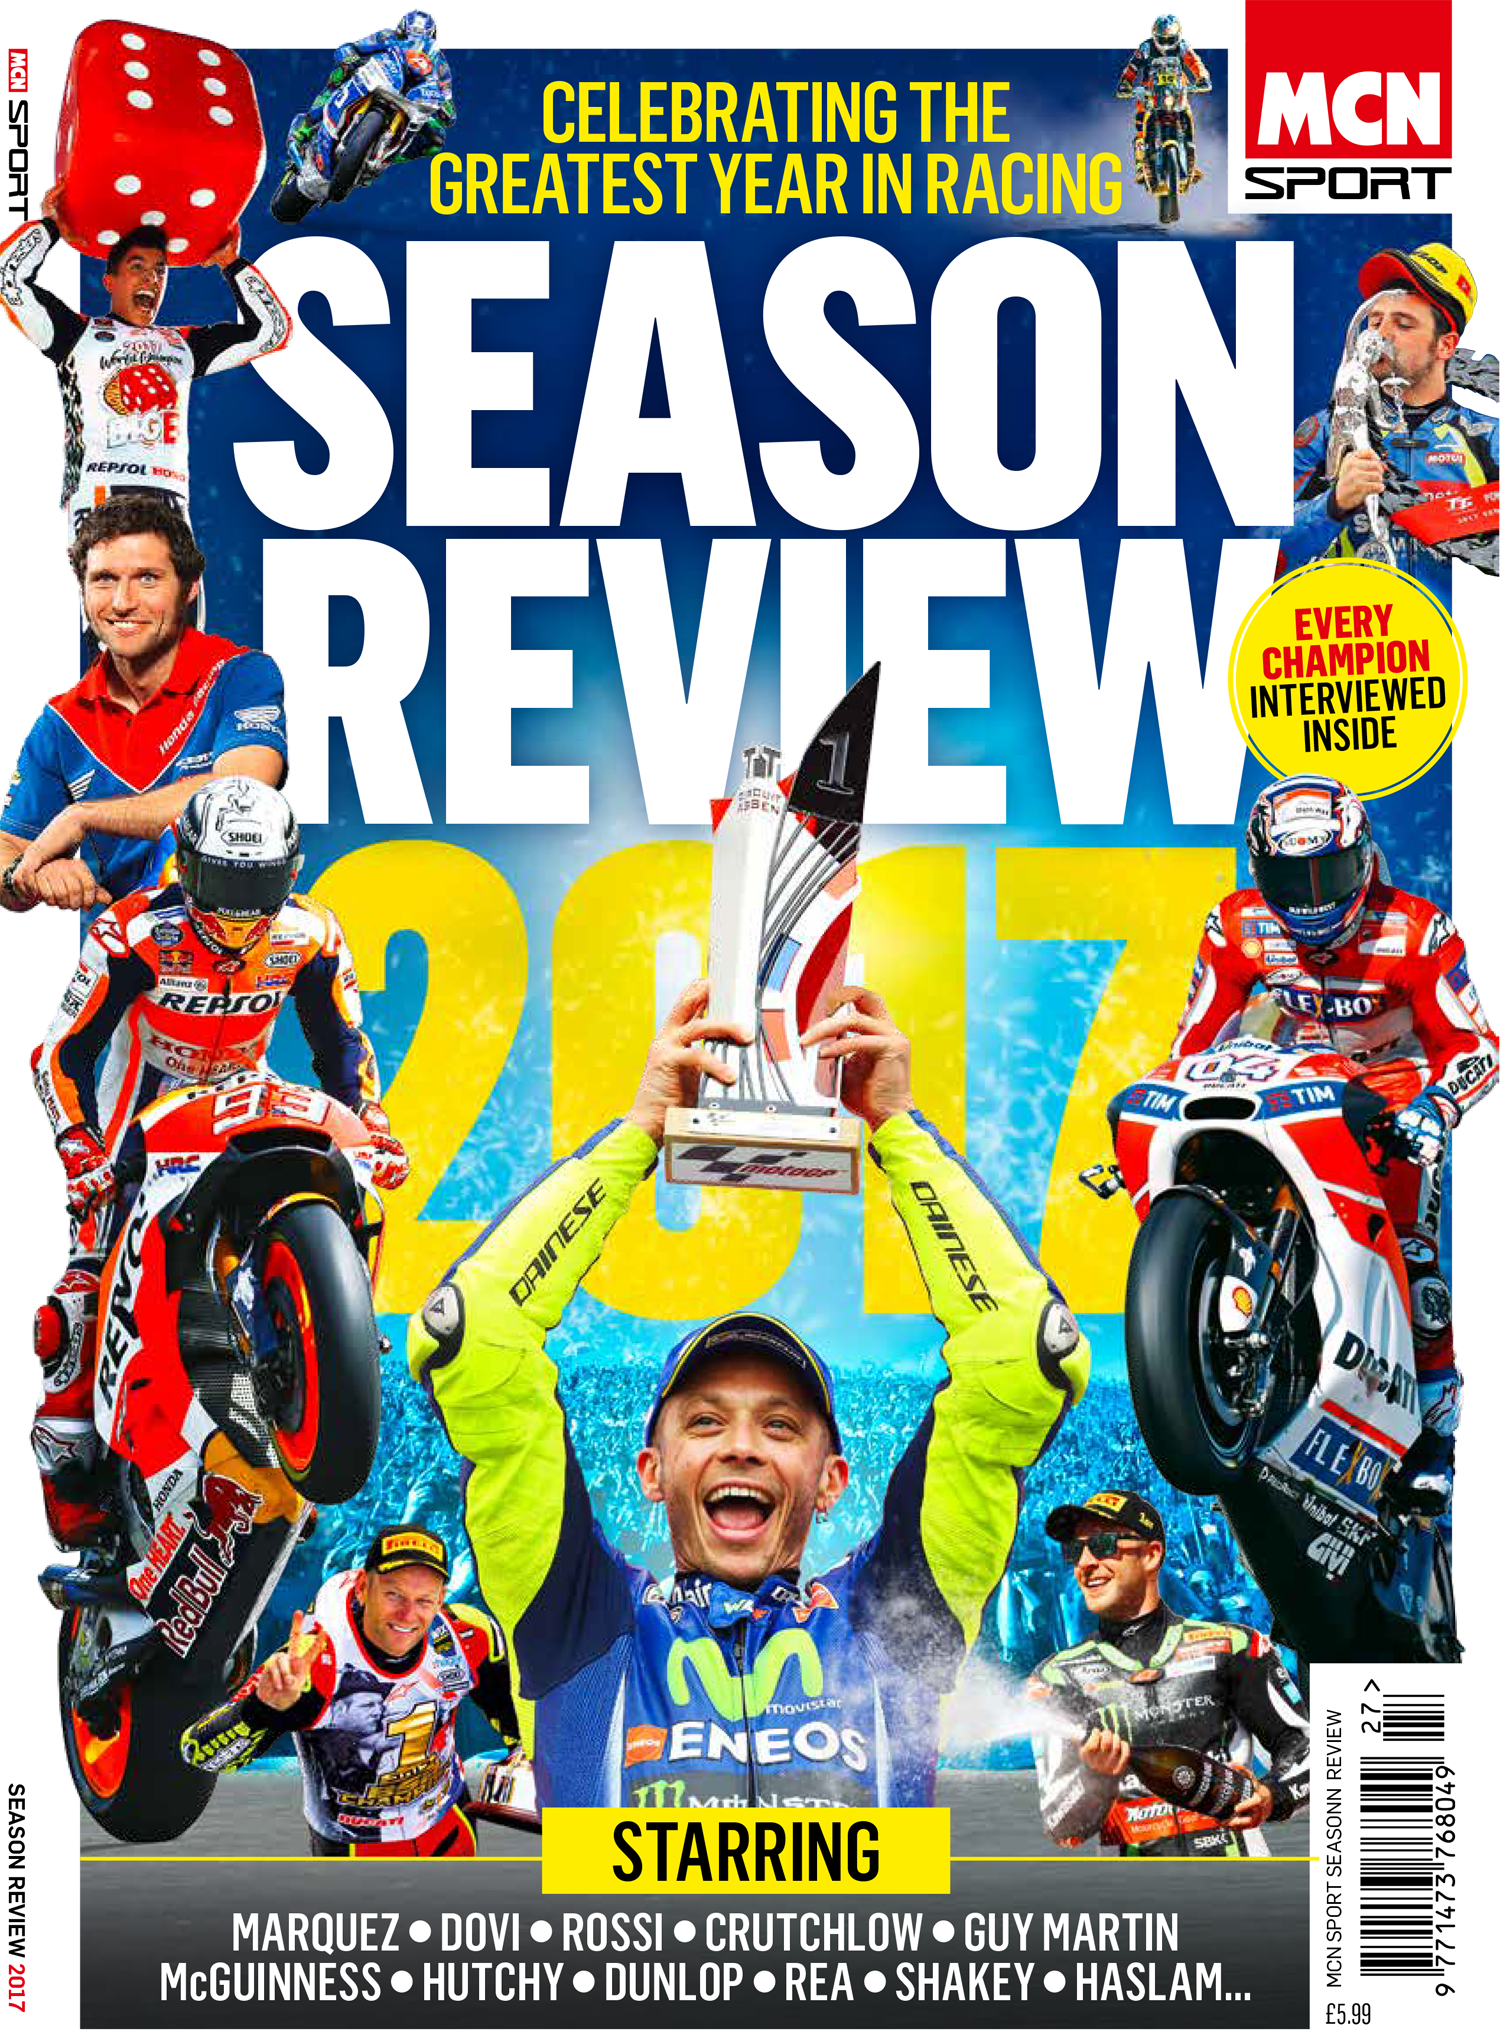 MCN Sport Season Review 2017 issue is out now!